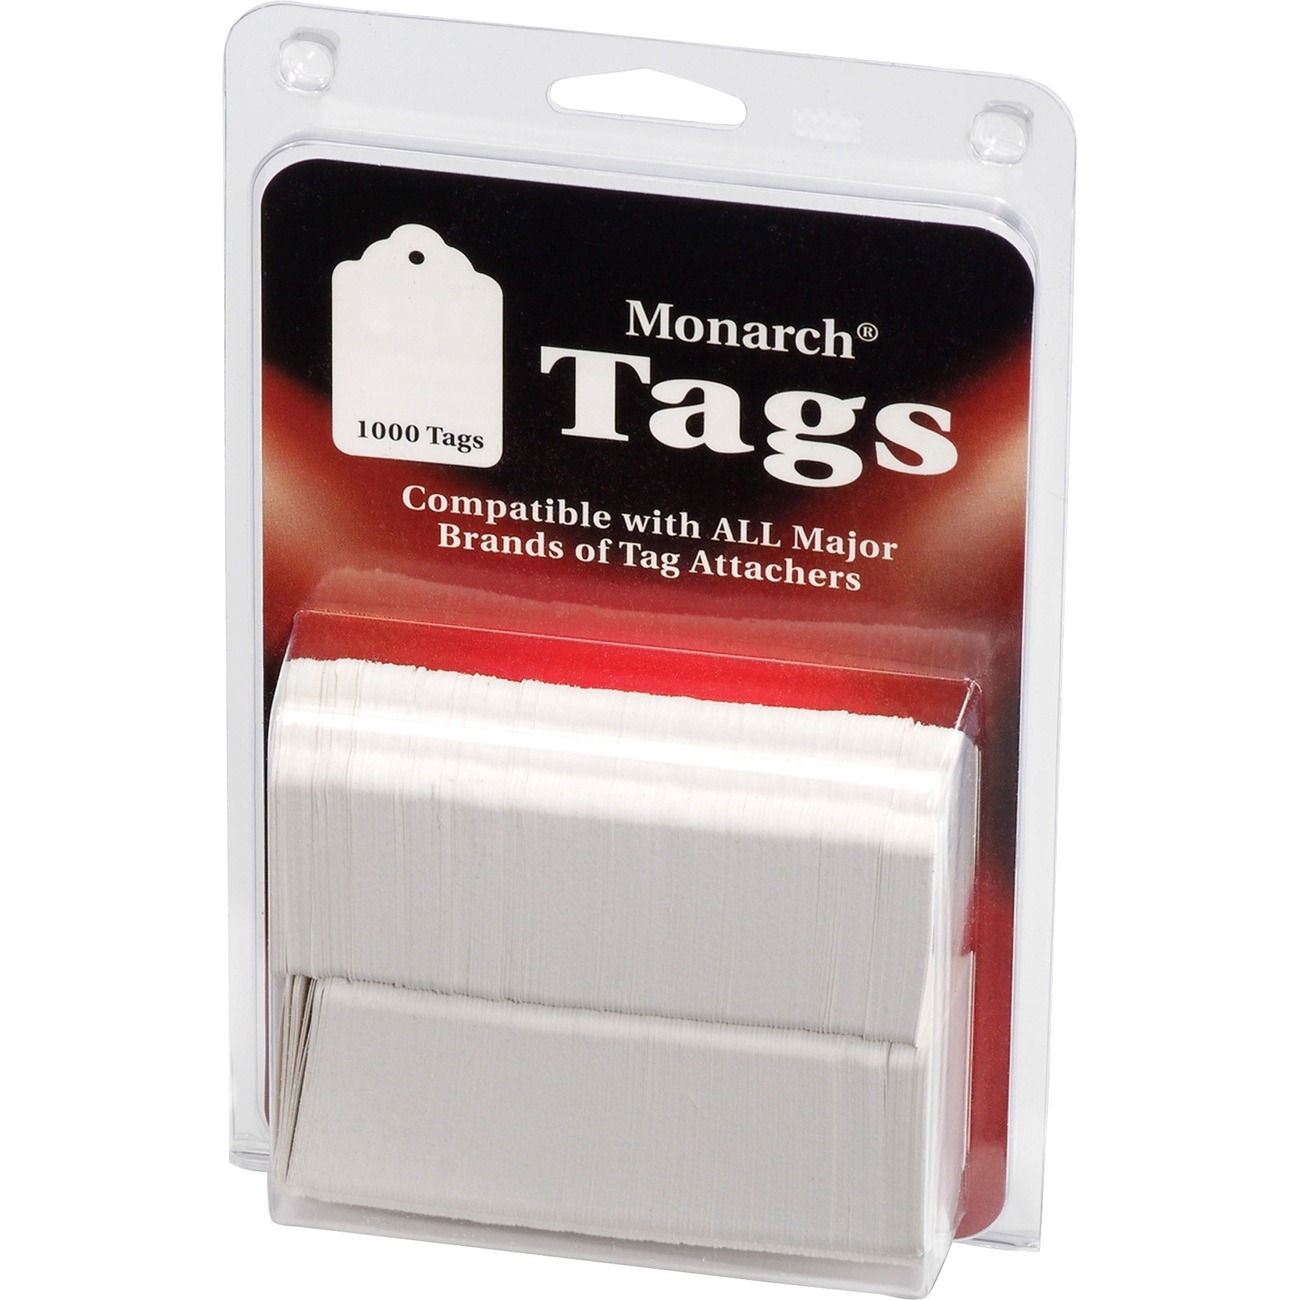 Stringless White Tags Are Designed For Use With Monarch Tag Attacher Each Measures 1 8 X 3 4 Attach Them Handy And Plastic